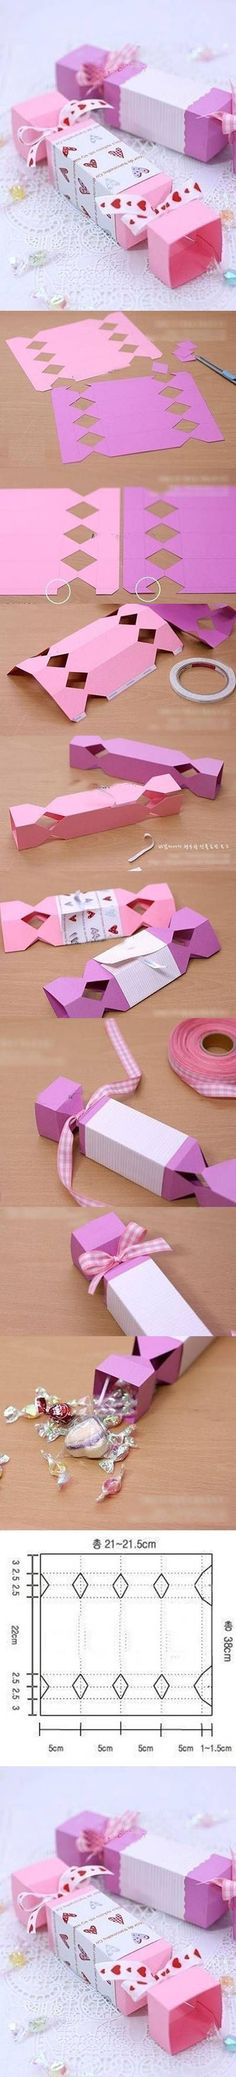 gift boxes, idea, paper gifts, candies, candy gifts, valentin, paper crafts, diy, candi gift